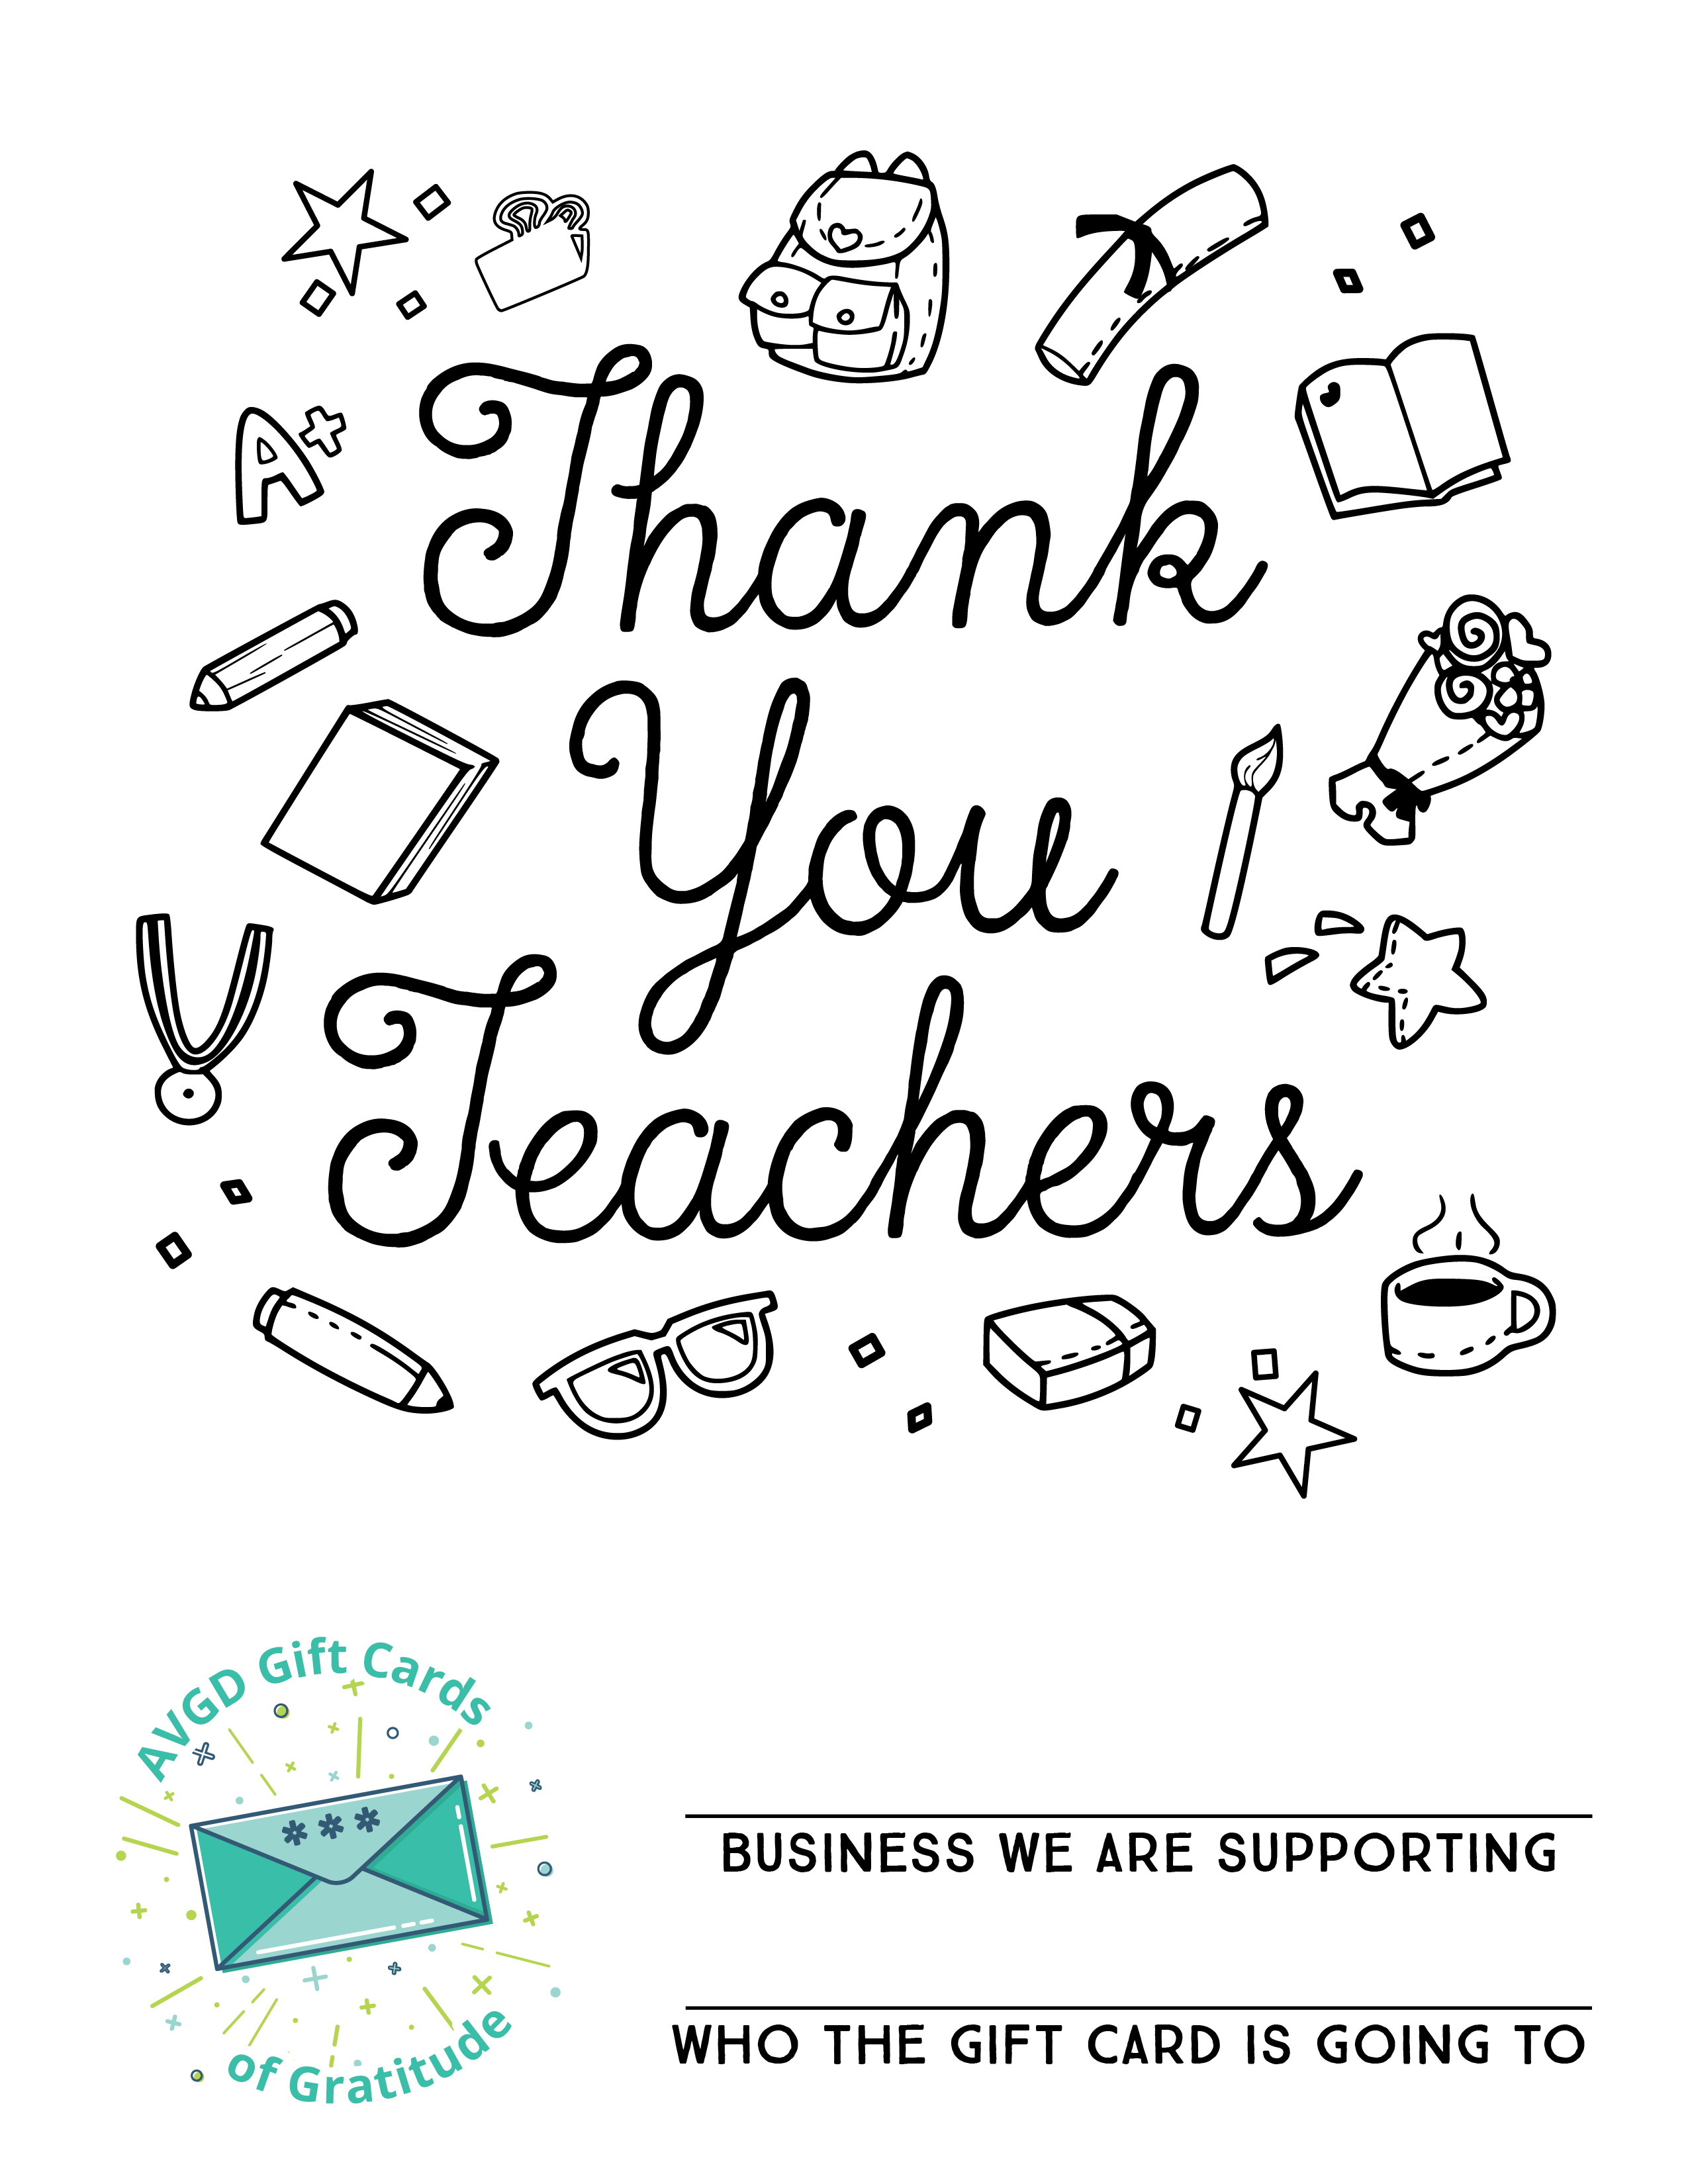 AVGD Gift Cards Coloring Sheets_Teachers